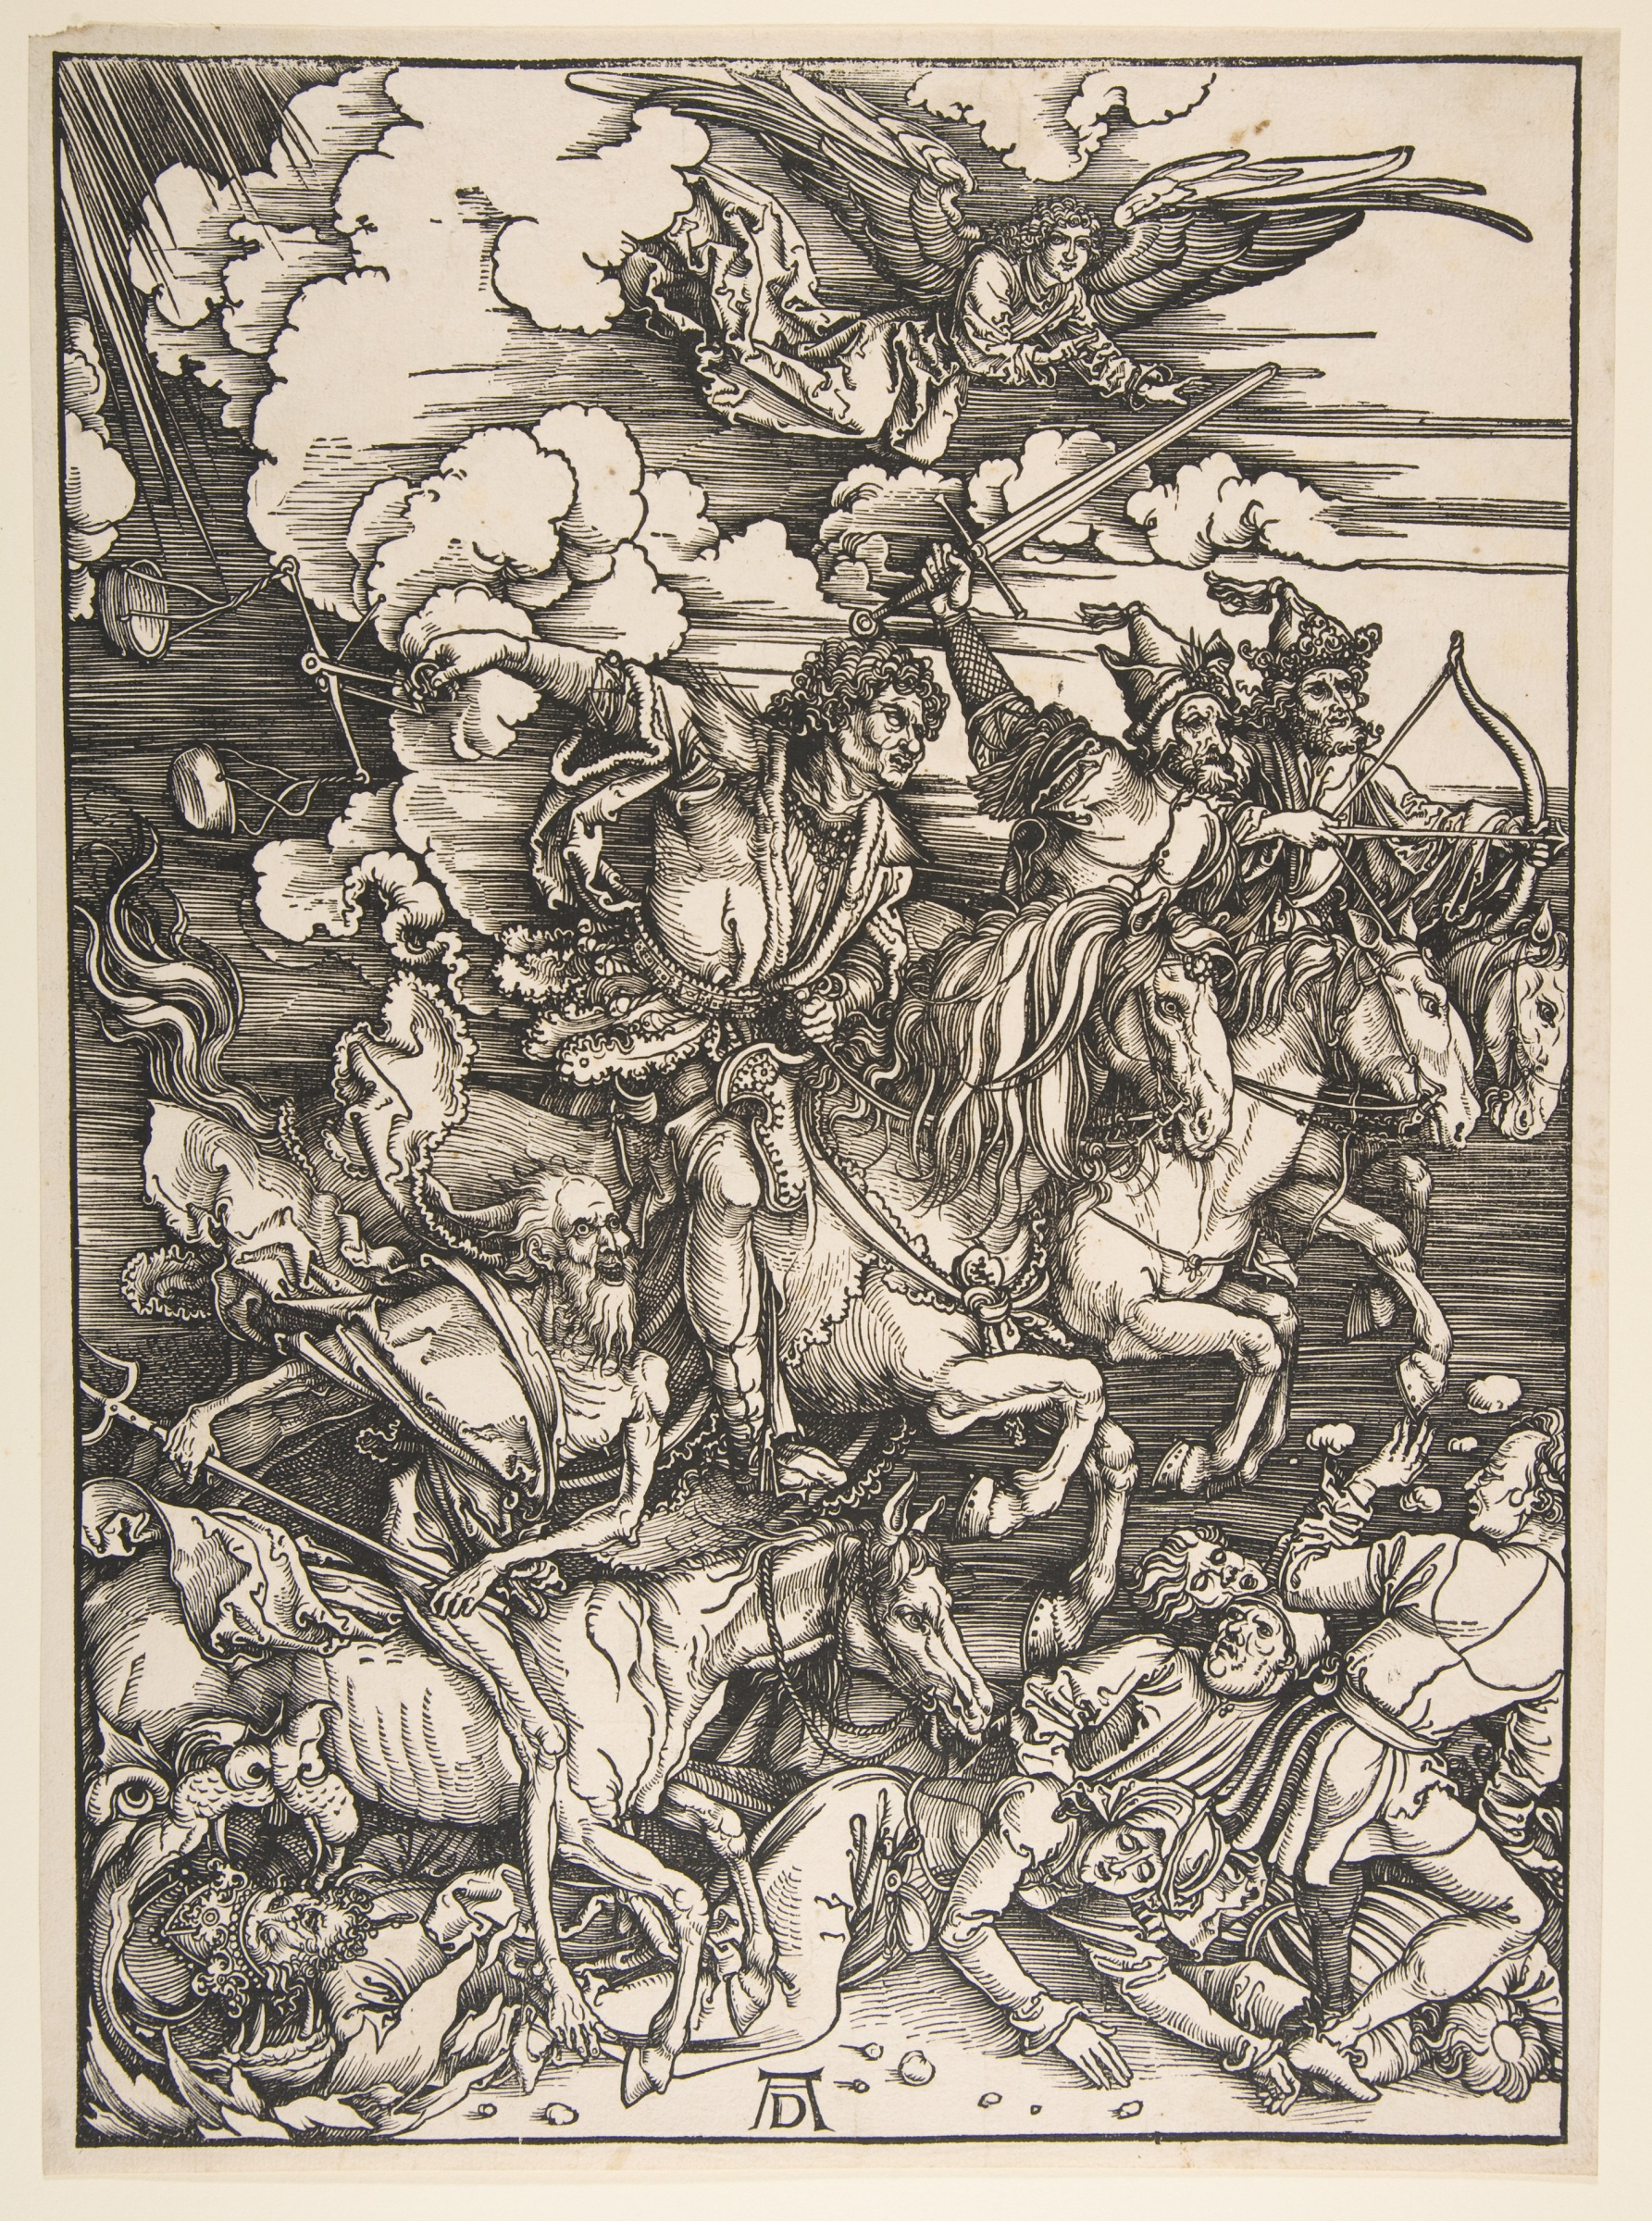 Albrecht Durer. The four horsemen of the Apocalypse.From the series the Apocalypse.